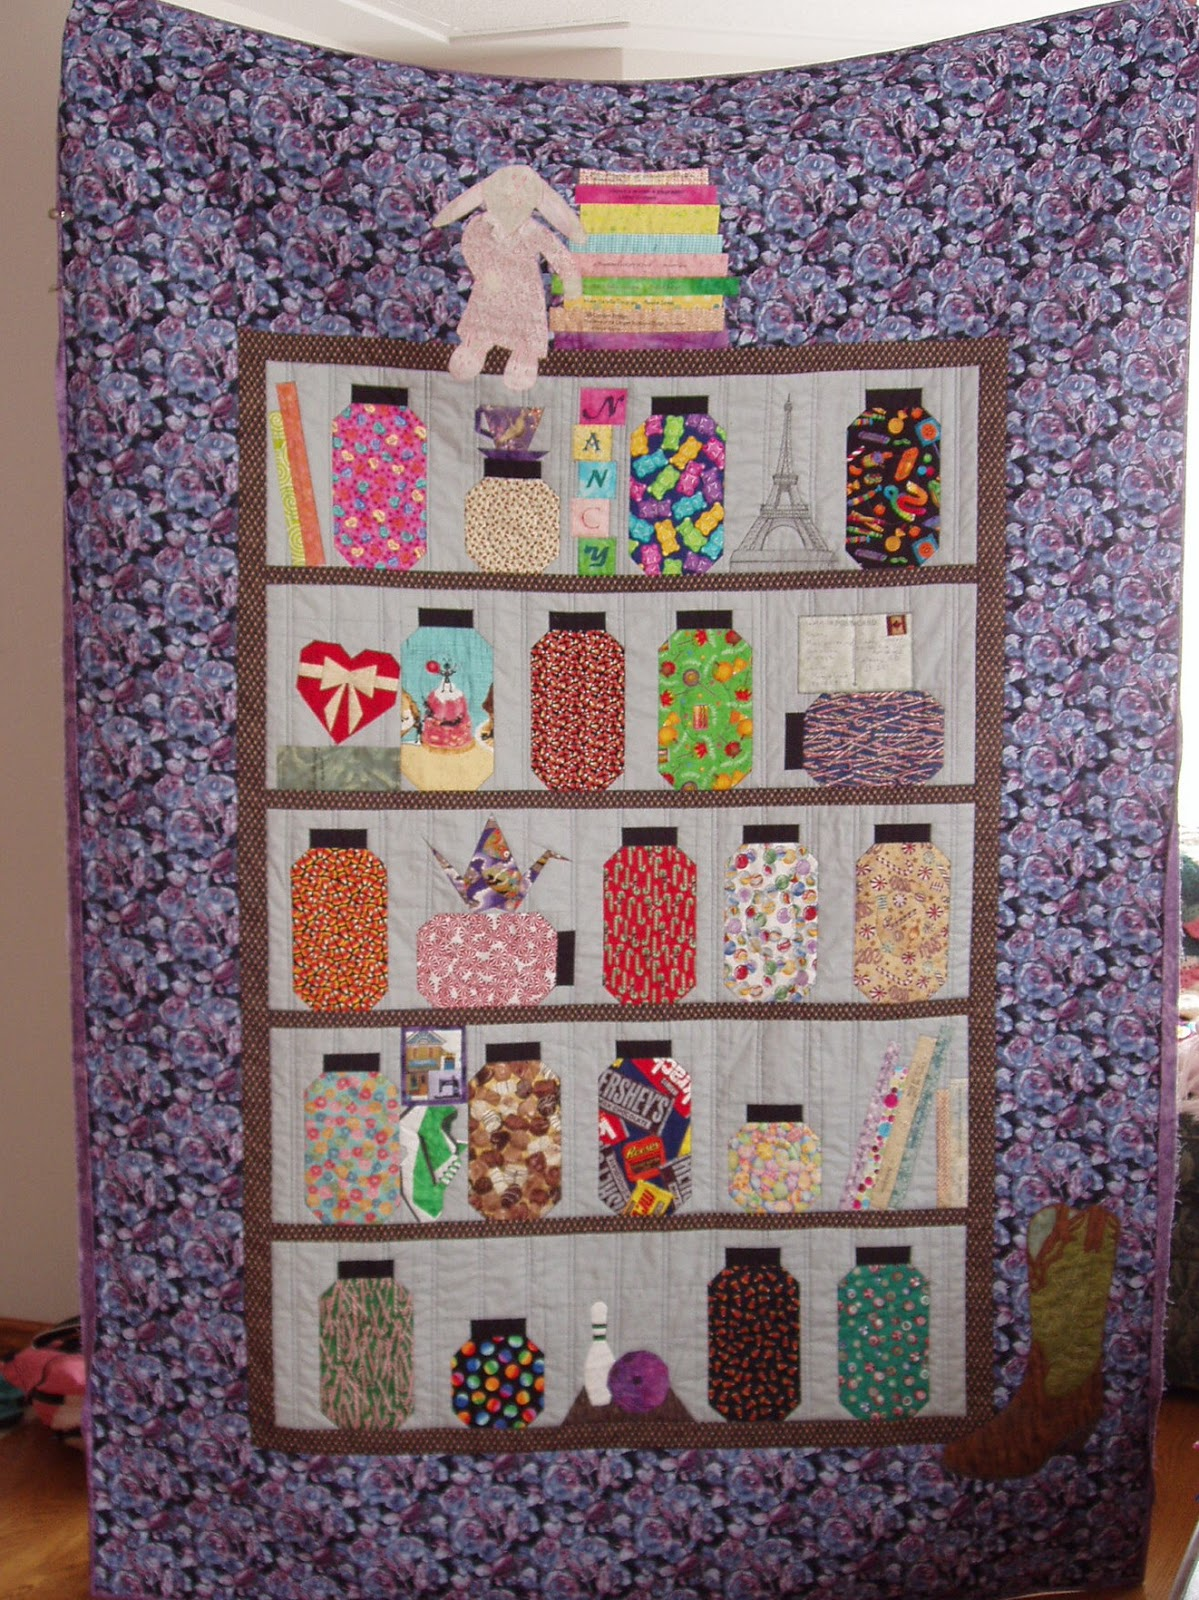 Books and Quilts: Nancy s Candy Jar Shelf - Quilting Gallery Viewer s Show and Choice